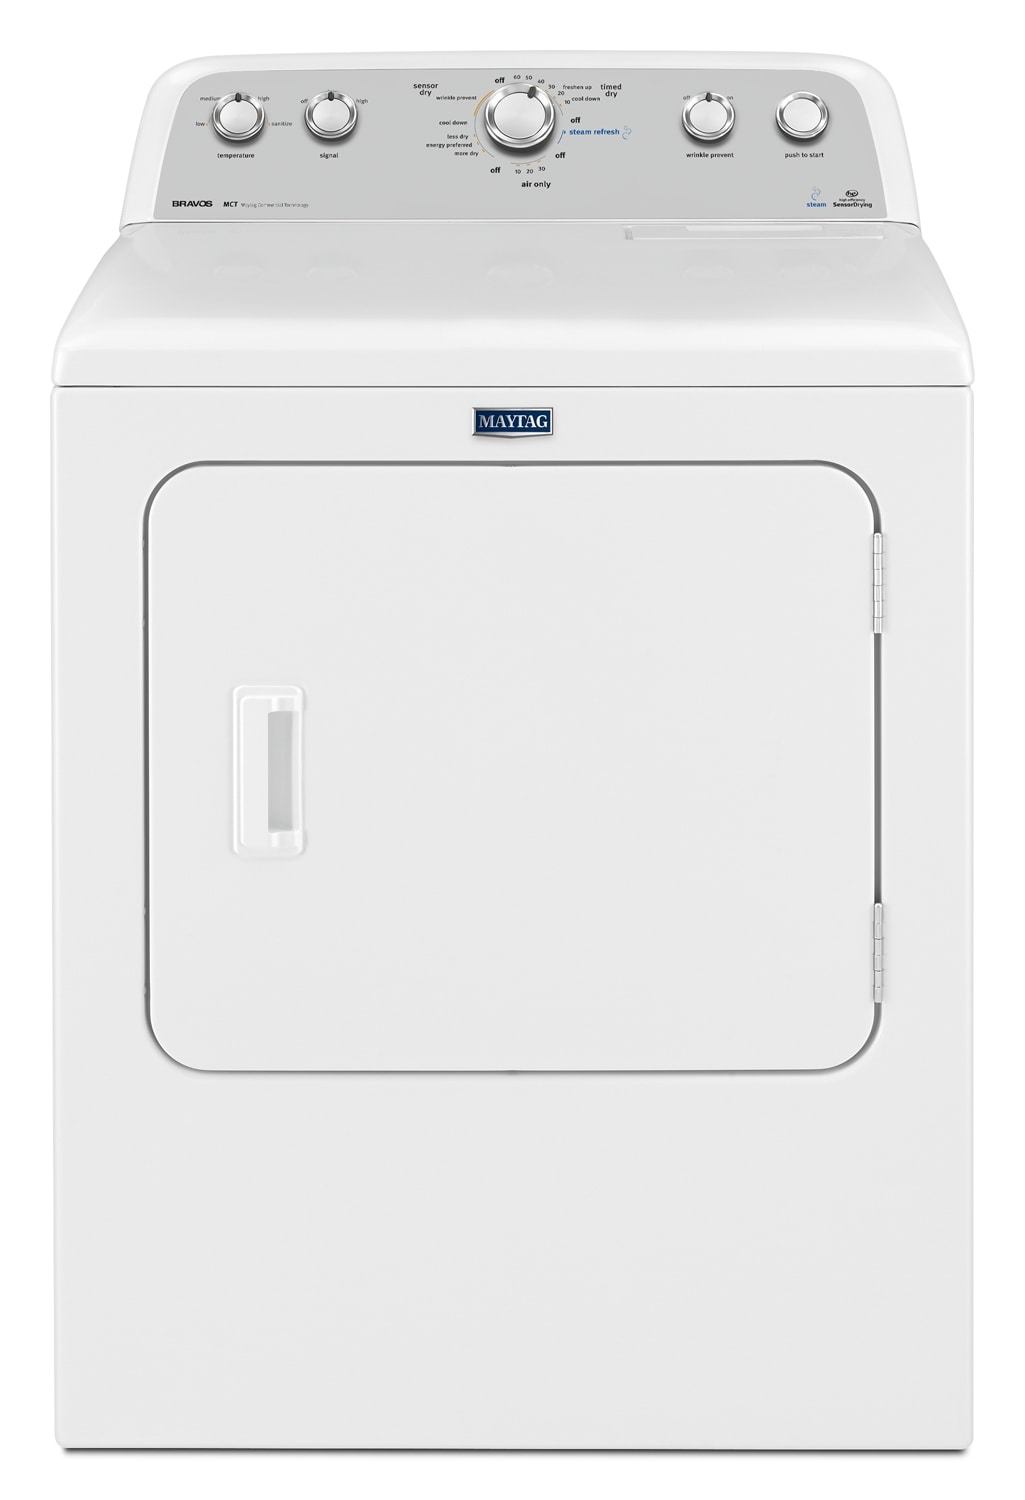 Maytag Bravos® 7.0 Cu. Ft. High-Efficiency Electric Dryer - White